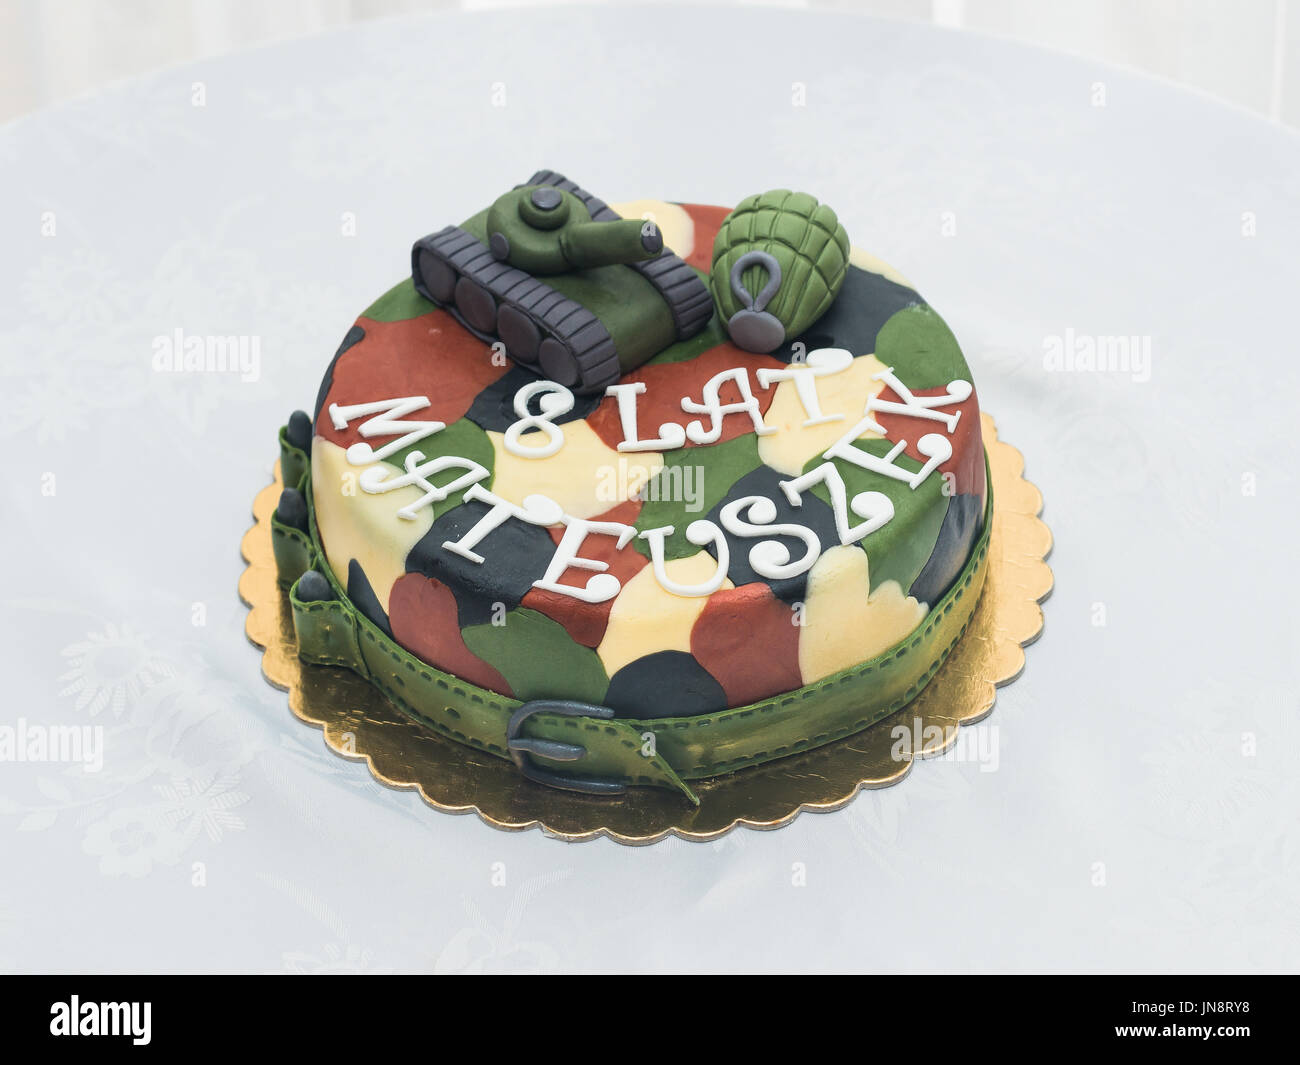 Terrific Birthday Cake For Military Lovers Stock Photo 150785132 Alamy Personalised Birthday Cards Paralily Jamesorg